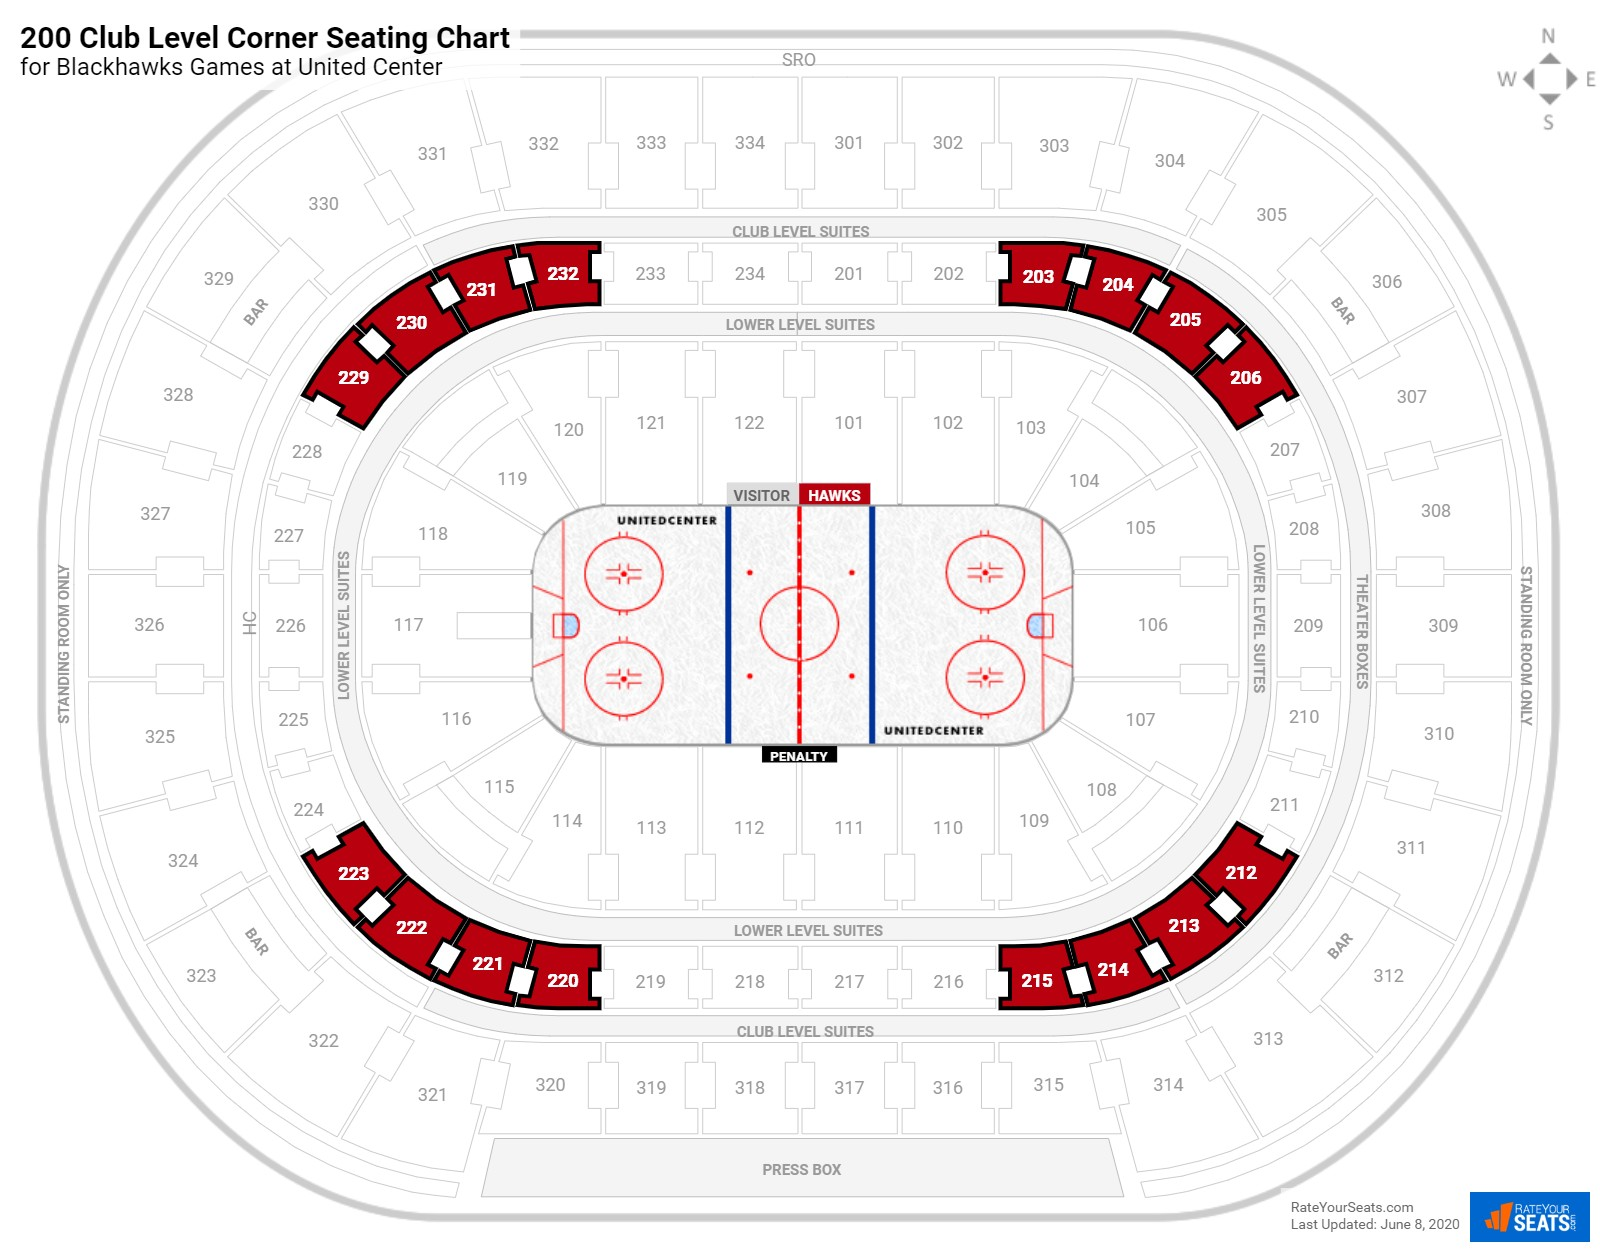 United Center Club Level Corner seating chart